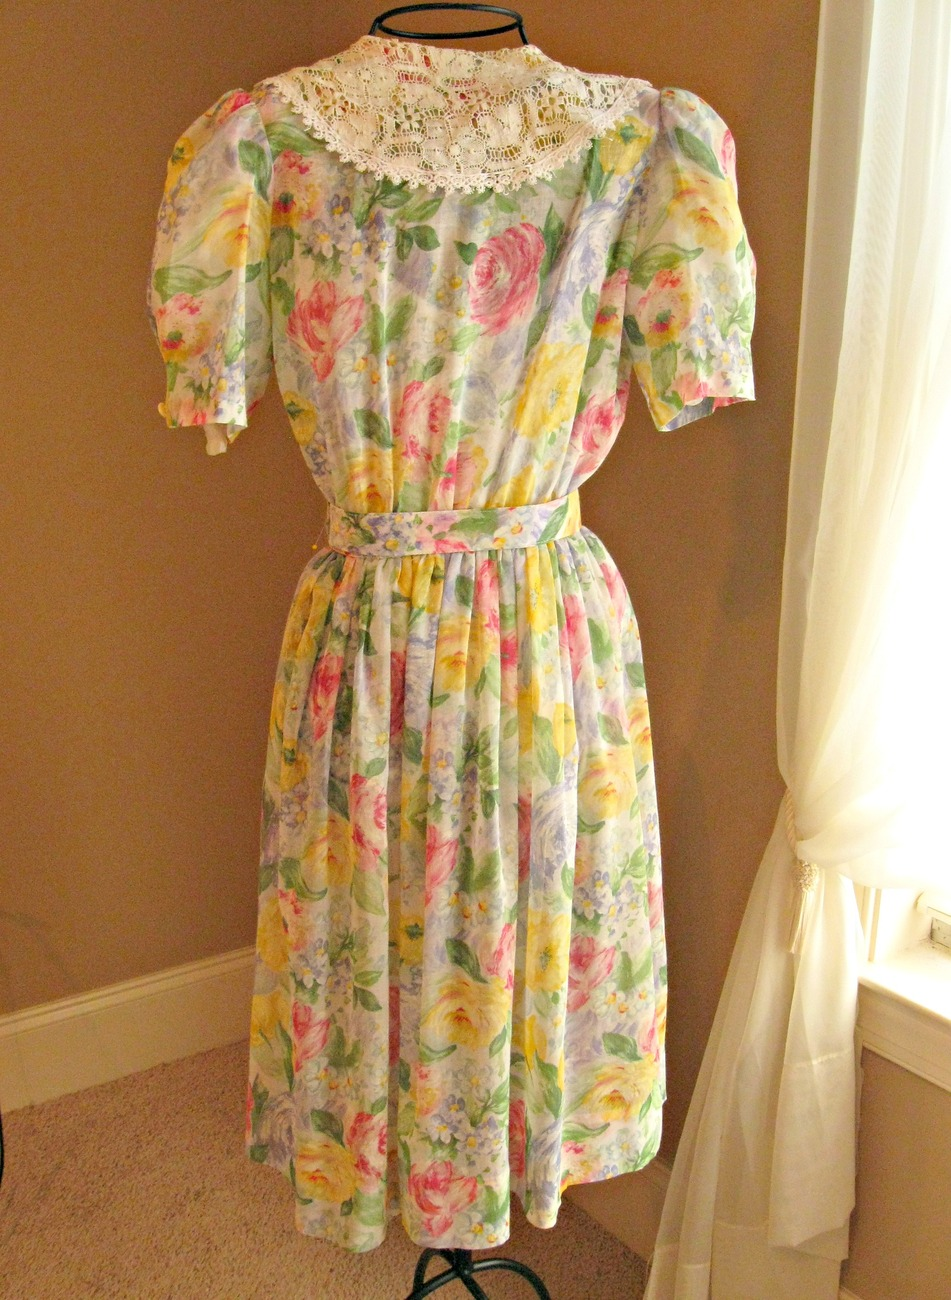 Free + shipping. Vintage 1980's dress w/ lace collar. Belted, colorful, floral.